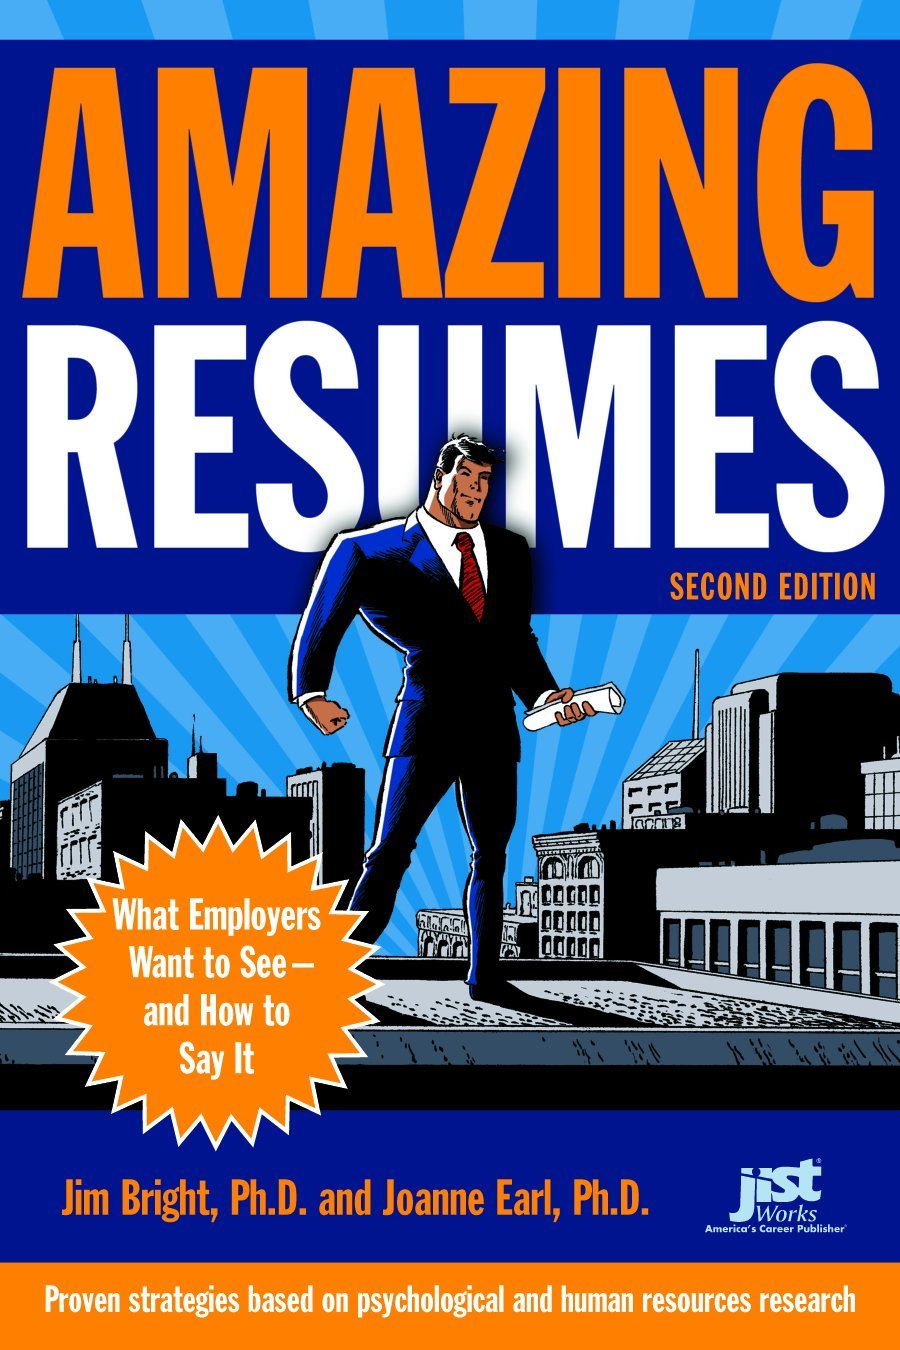 amazing resumes what employers want to see and how to say it amazing resumes what employers want to see and how to say it amazing resumes what employers want to see how to say it jim bright joanne earl